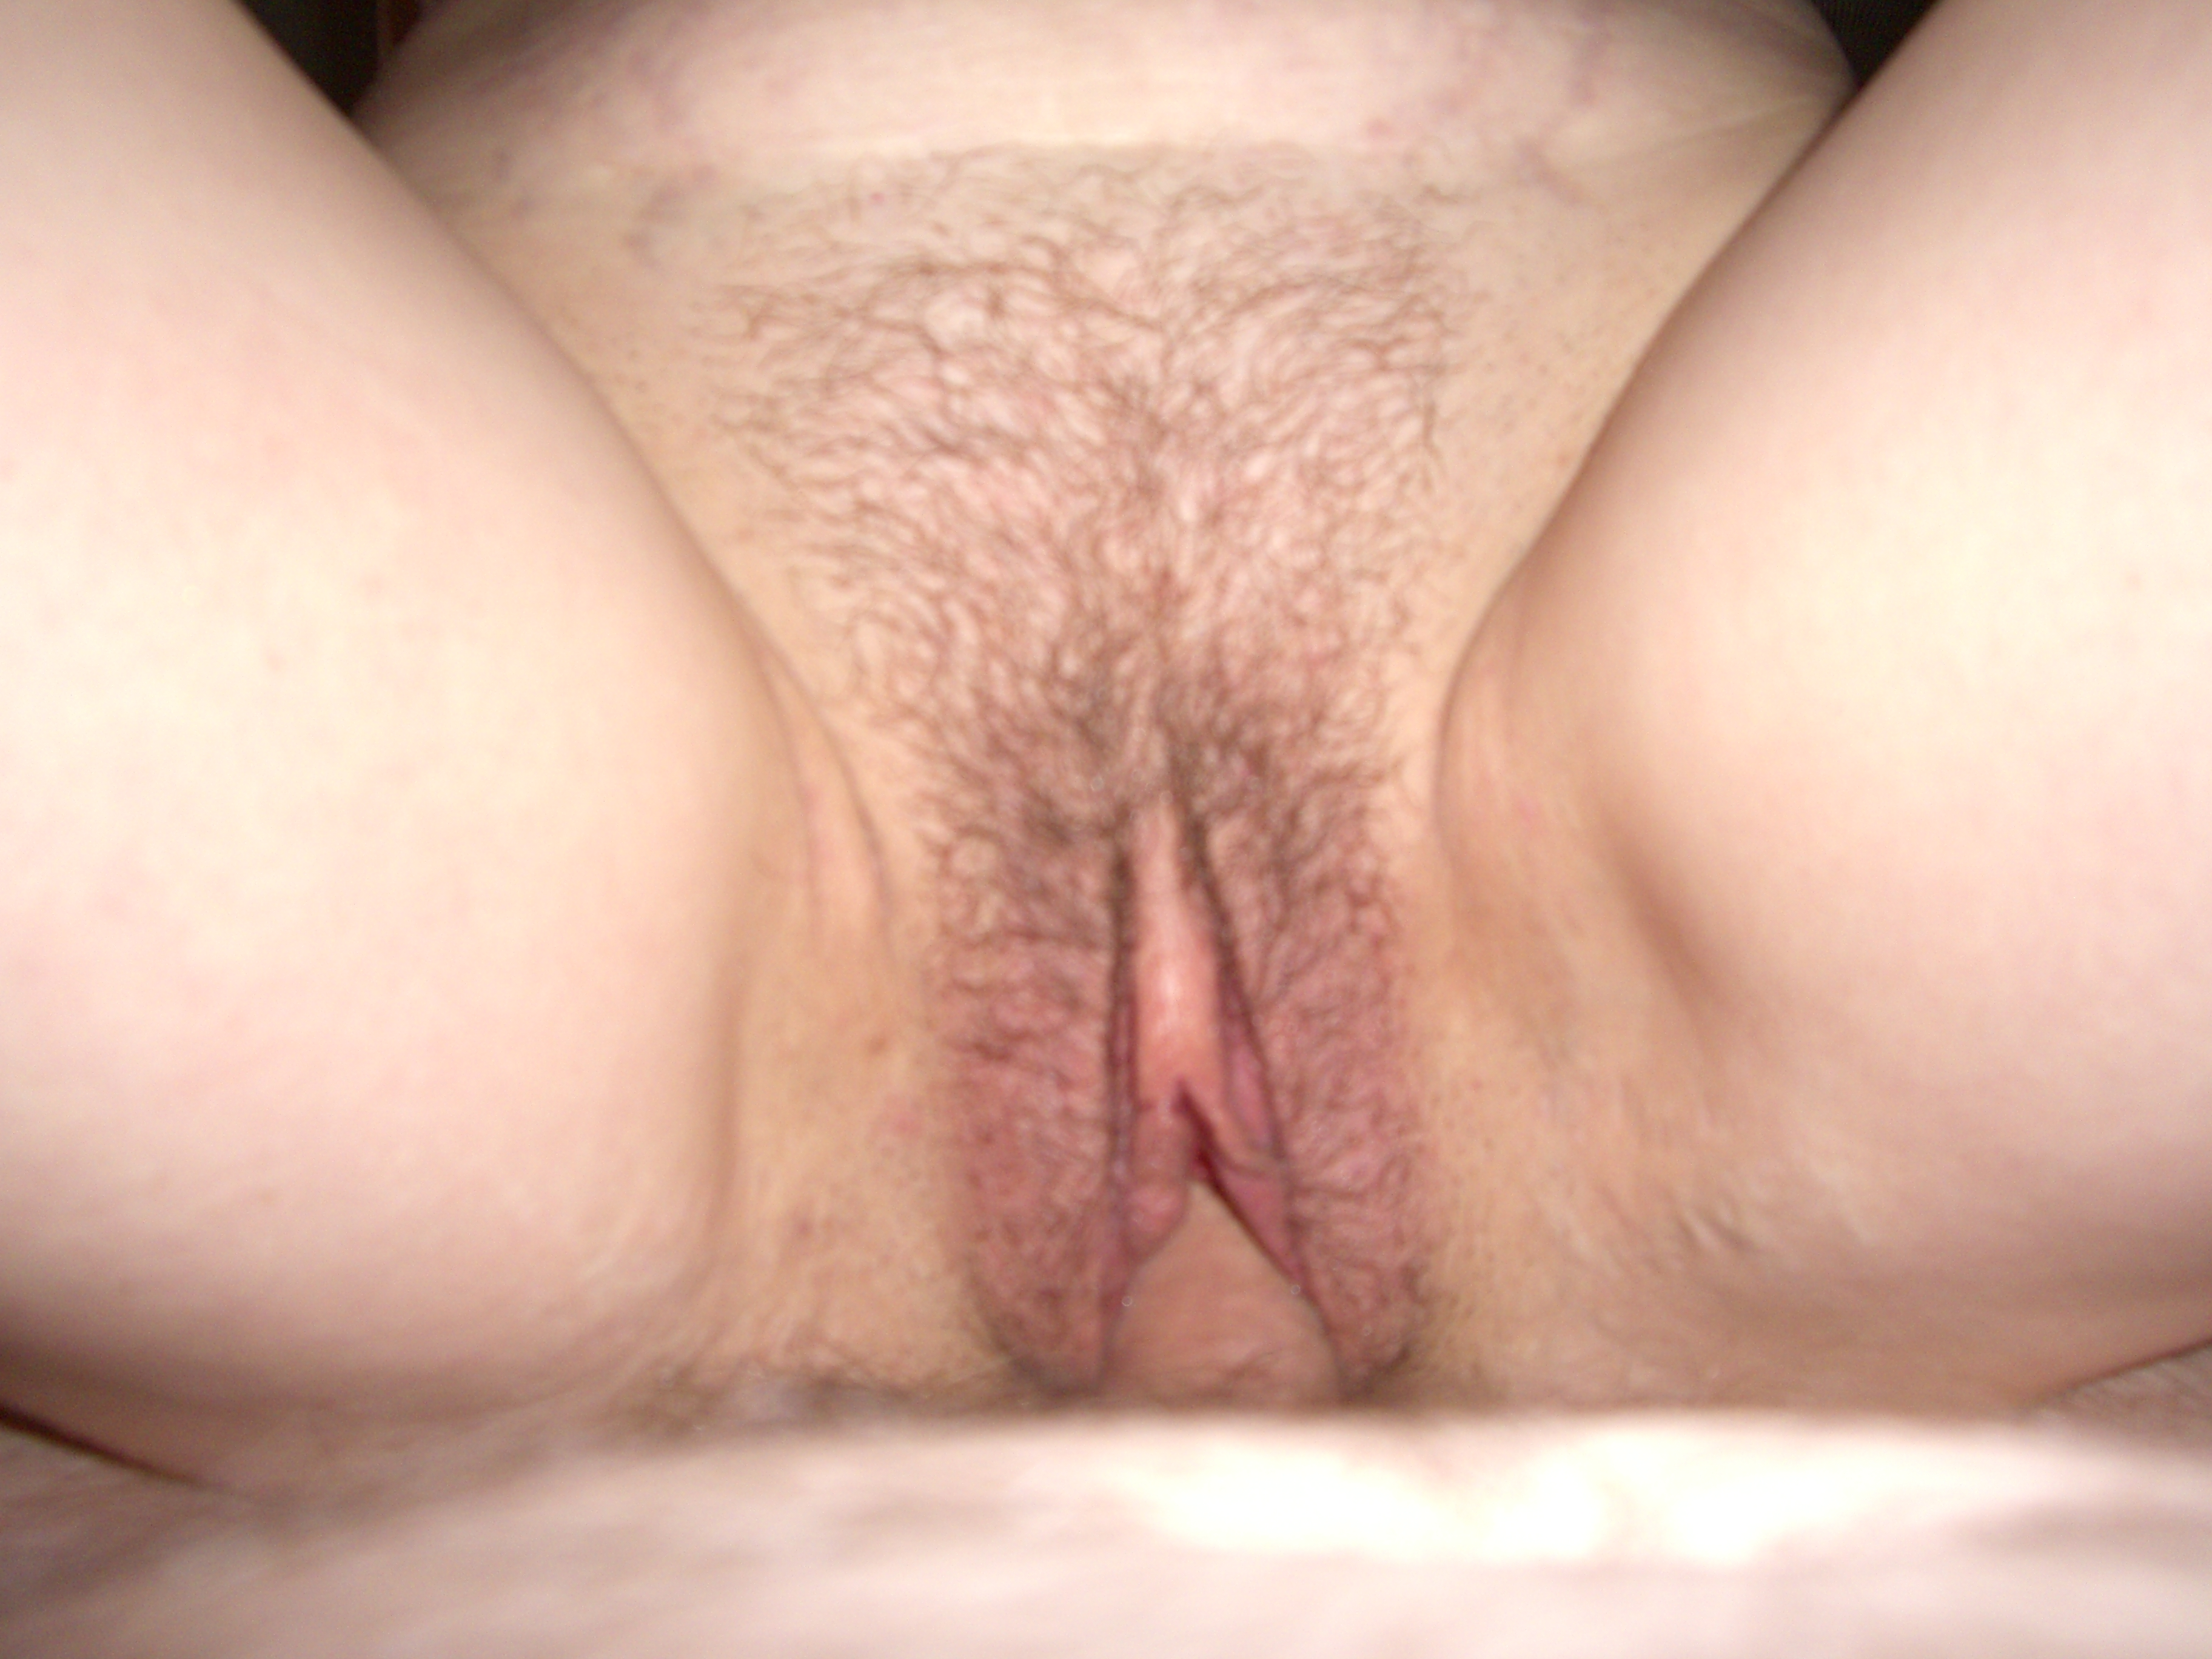 Free chat xxx girl and boy